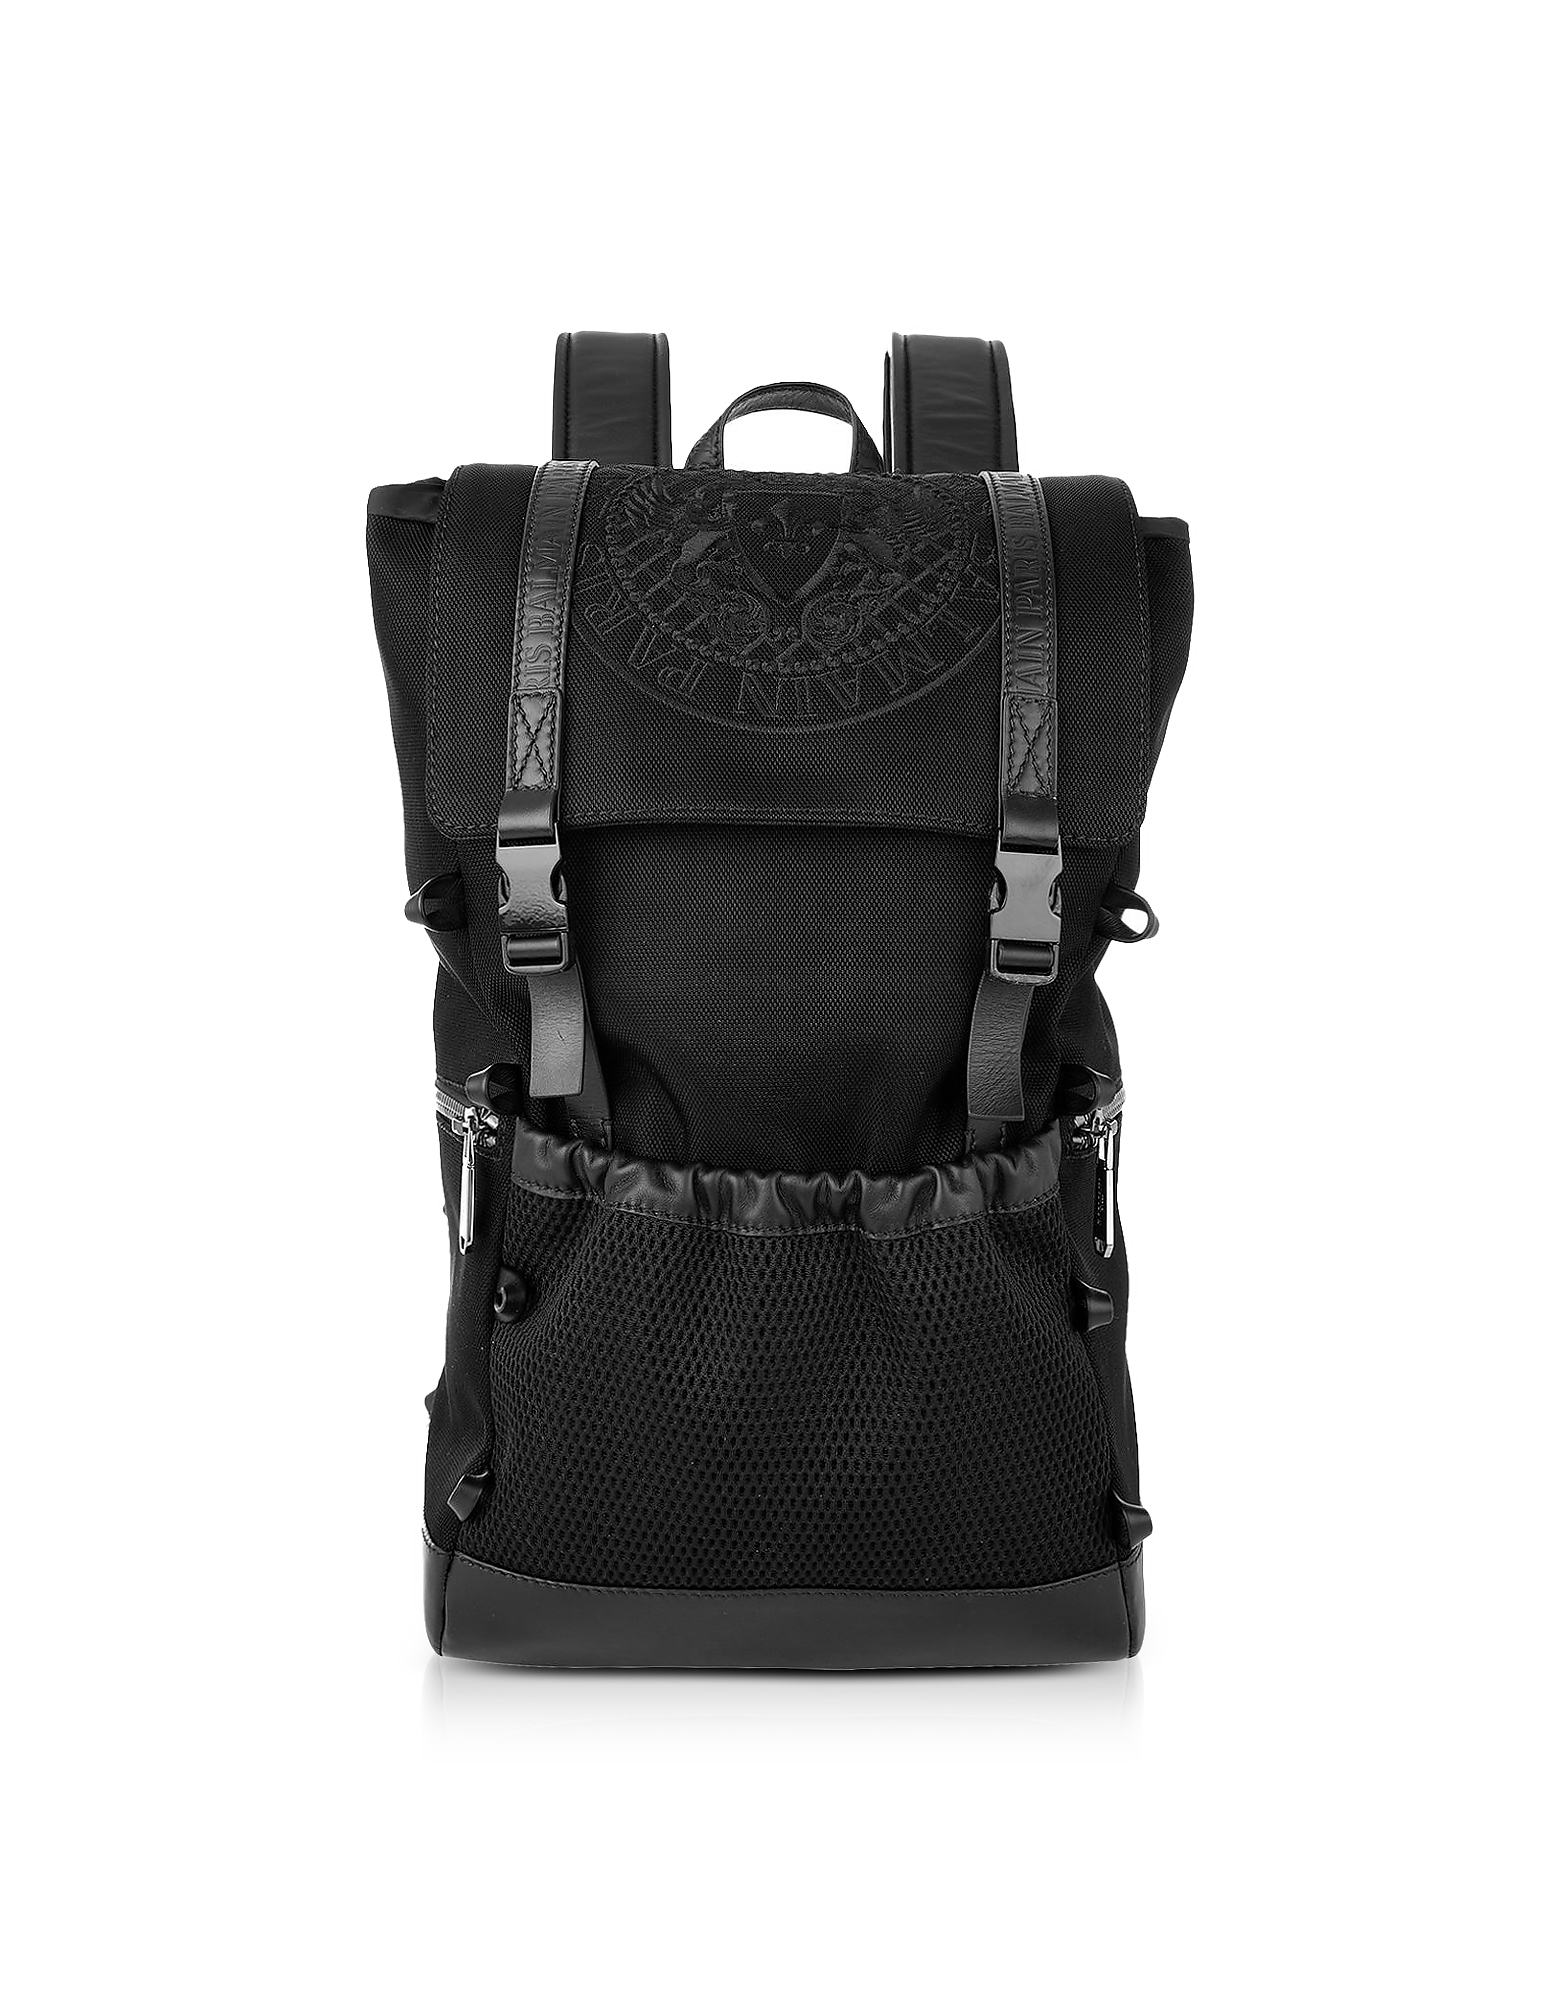 Image of Balmain Designer Backpacks, Black Nylon Men's Climb Backpack